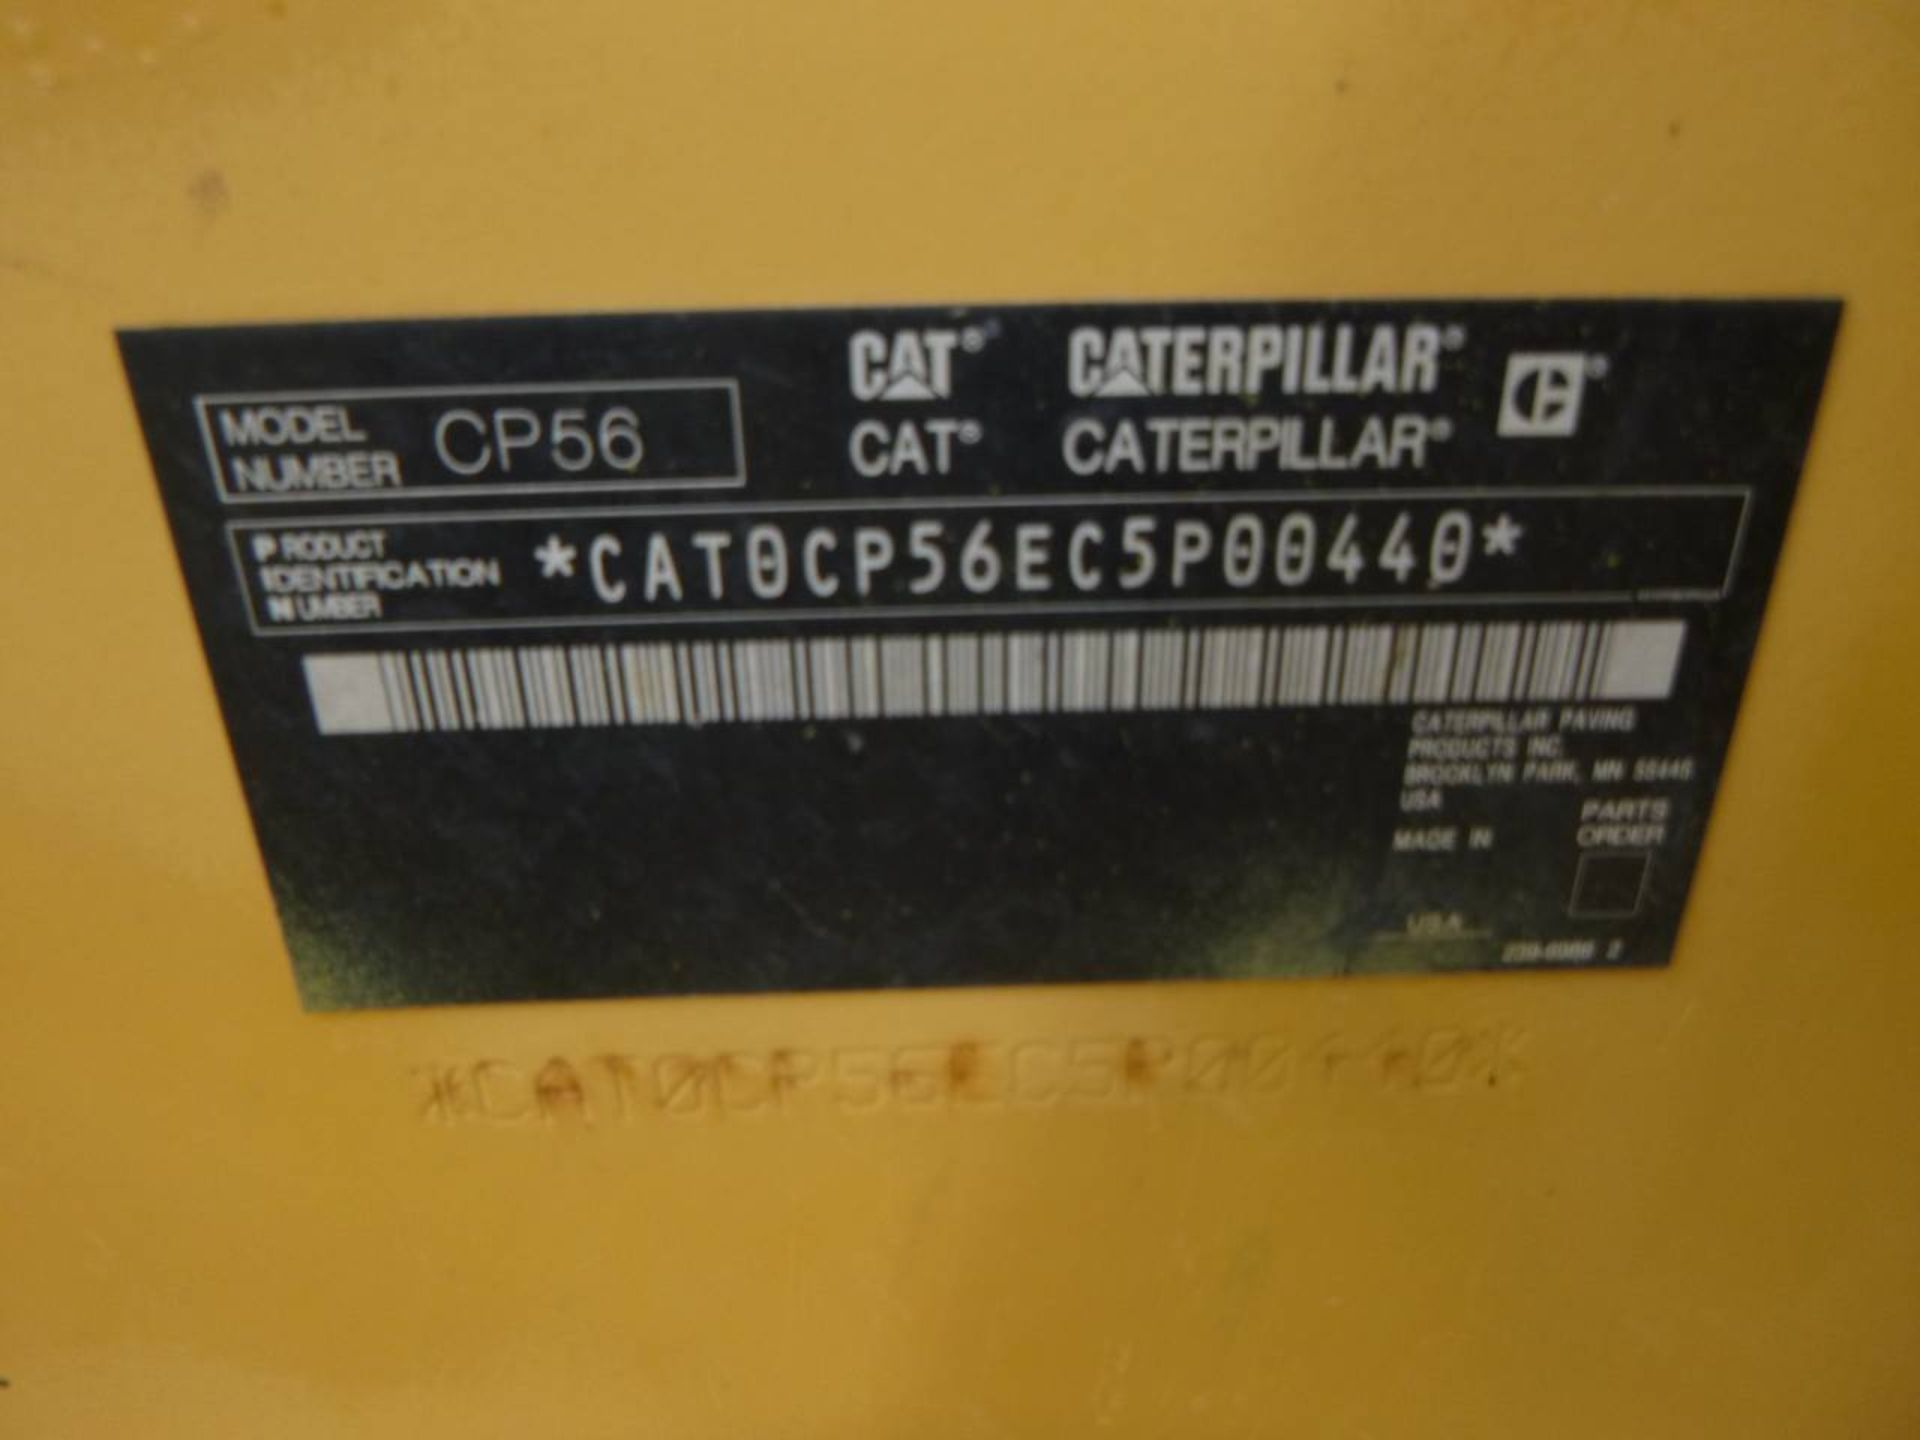 2009 Caterpillar CP56 Compactor - Image 9 of 9